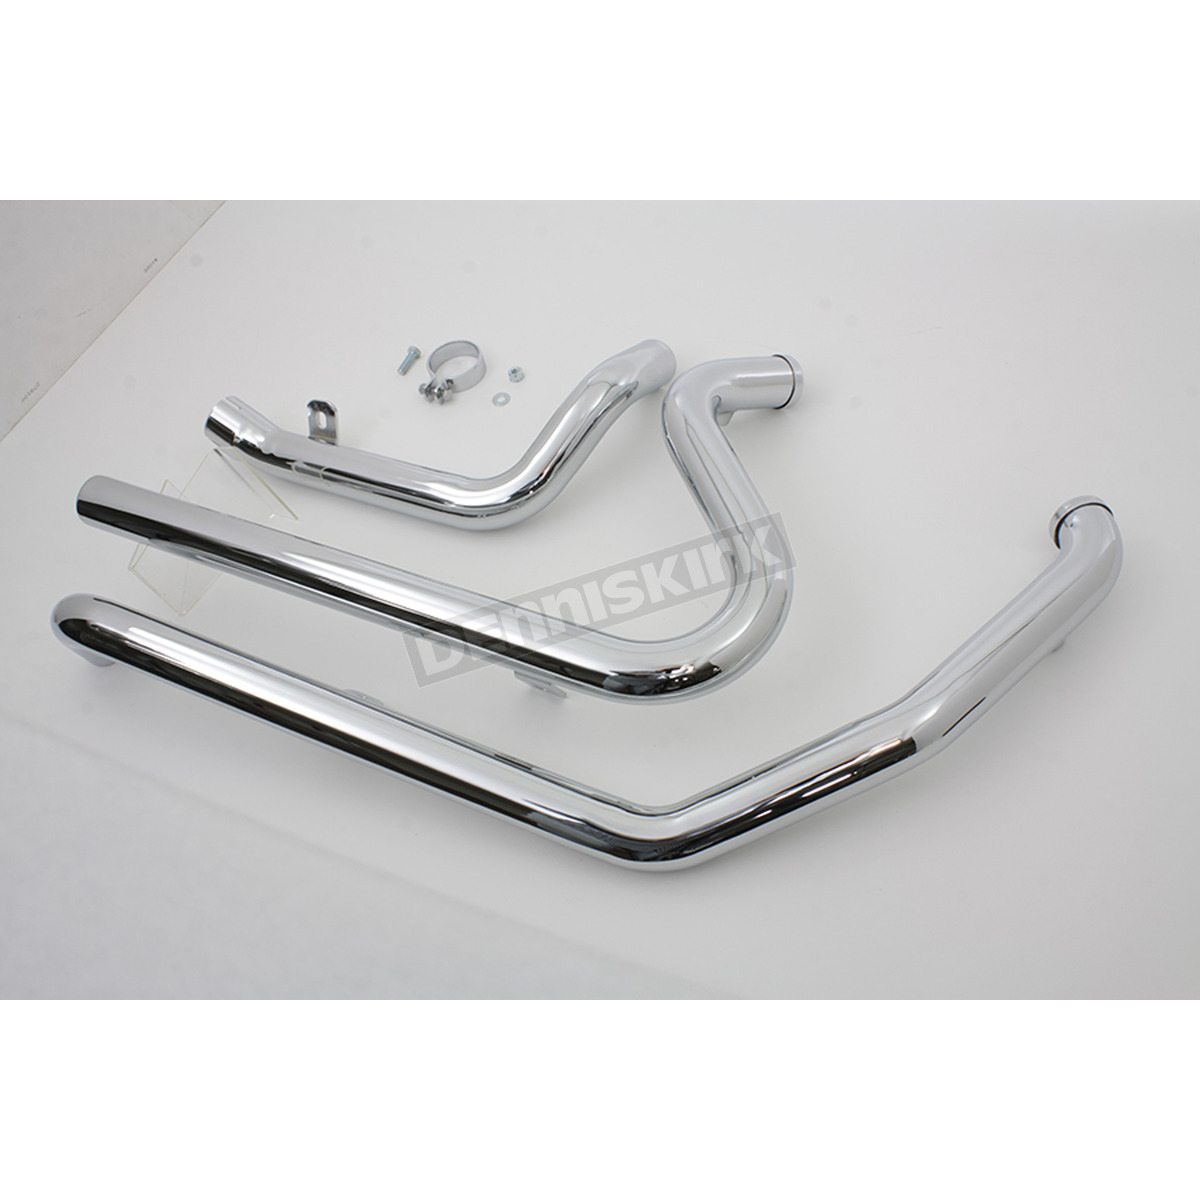 V-Twin Exhaust Crossover Tube Gasket,for Harley Davidson,by V-Twin